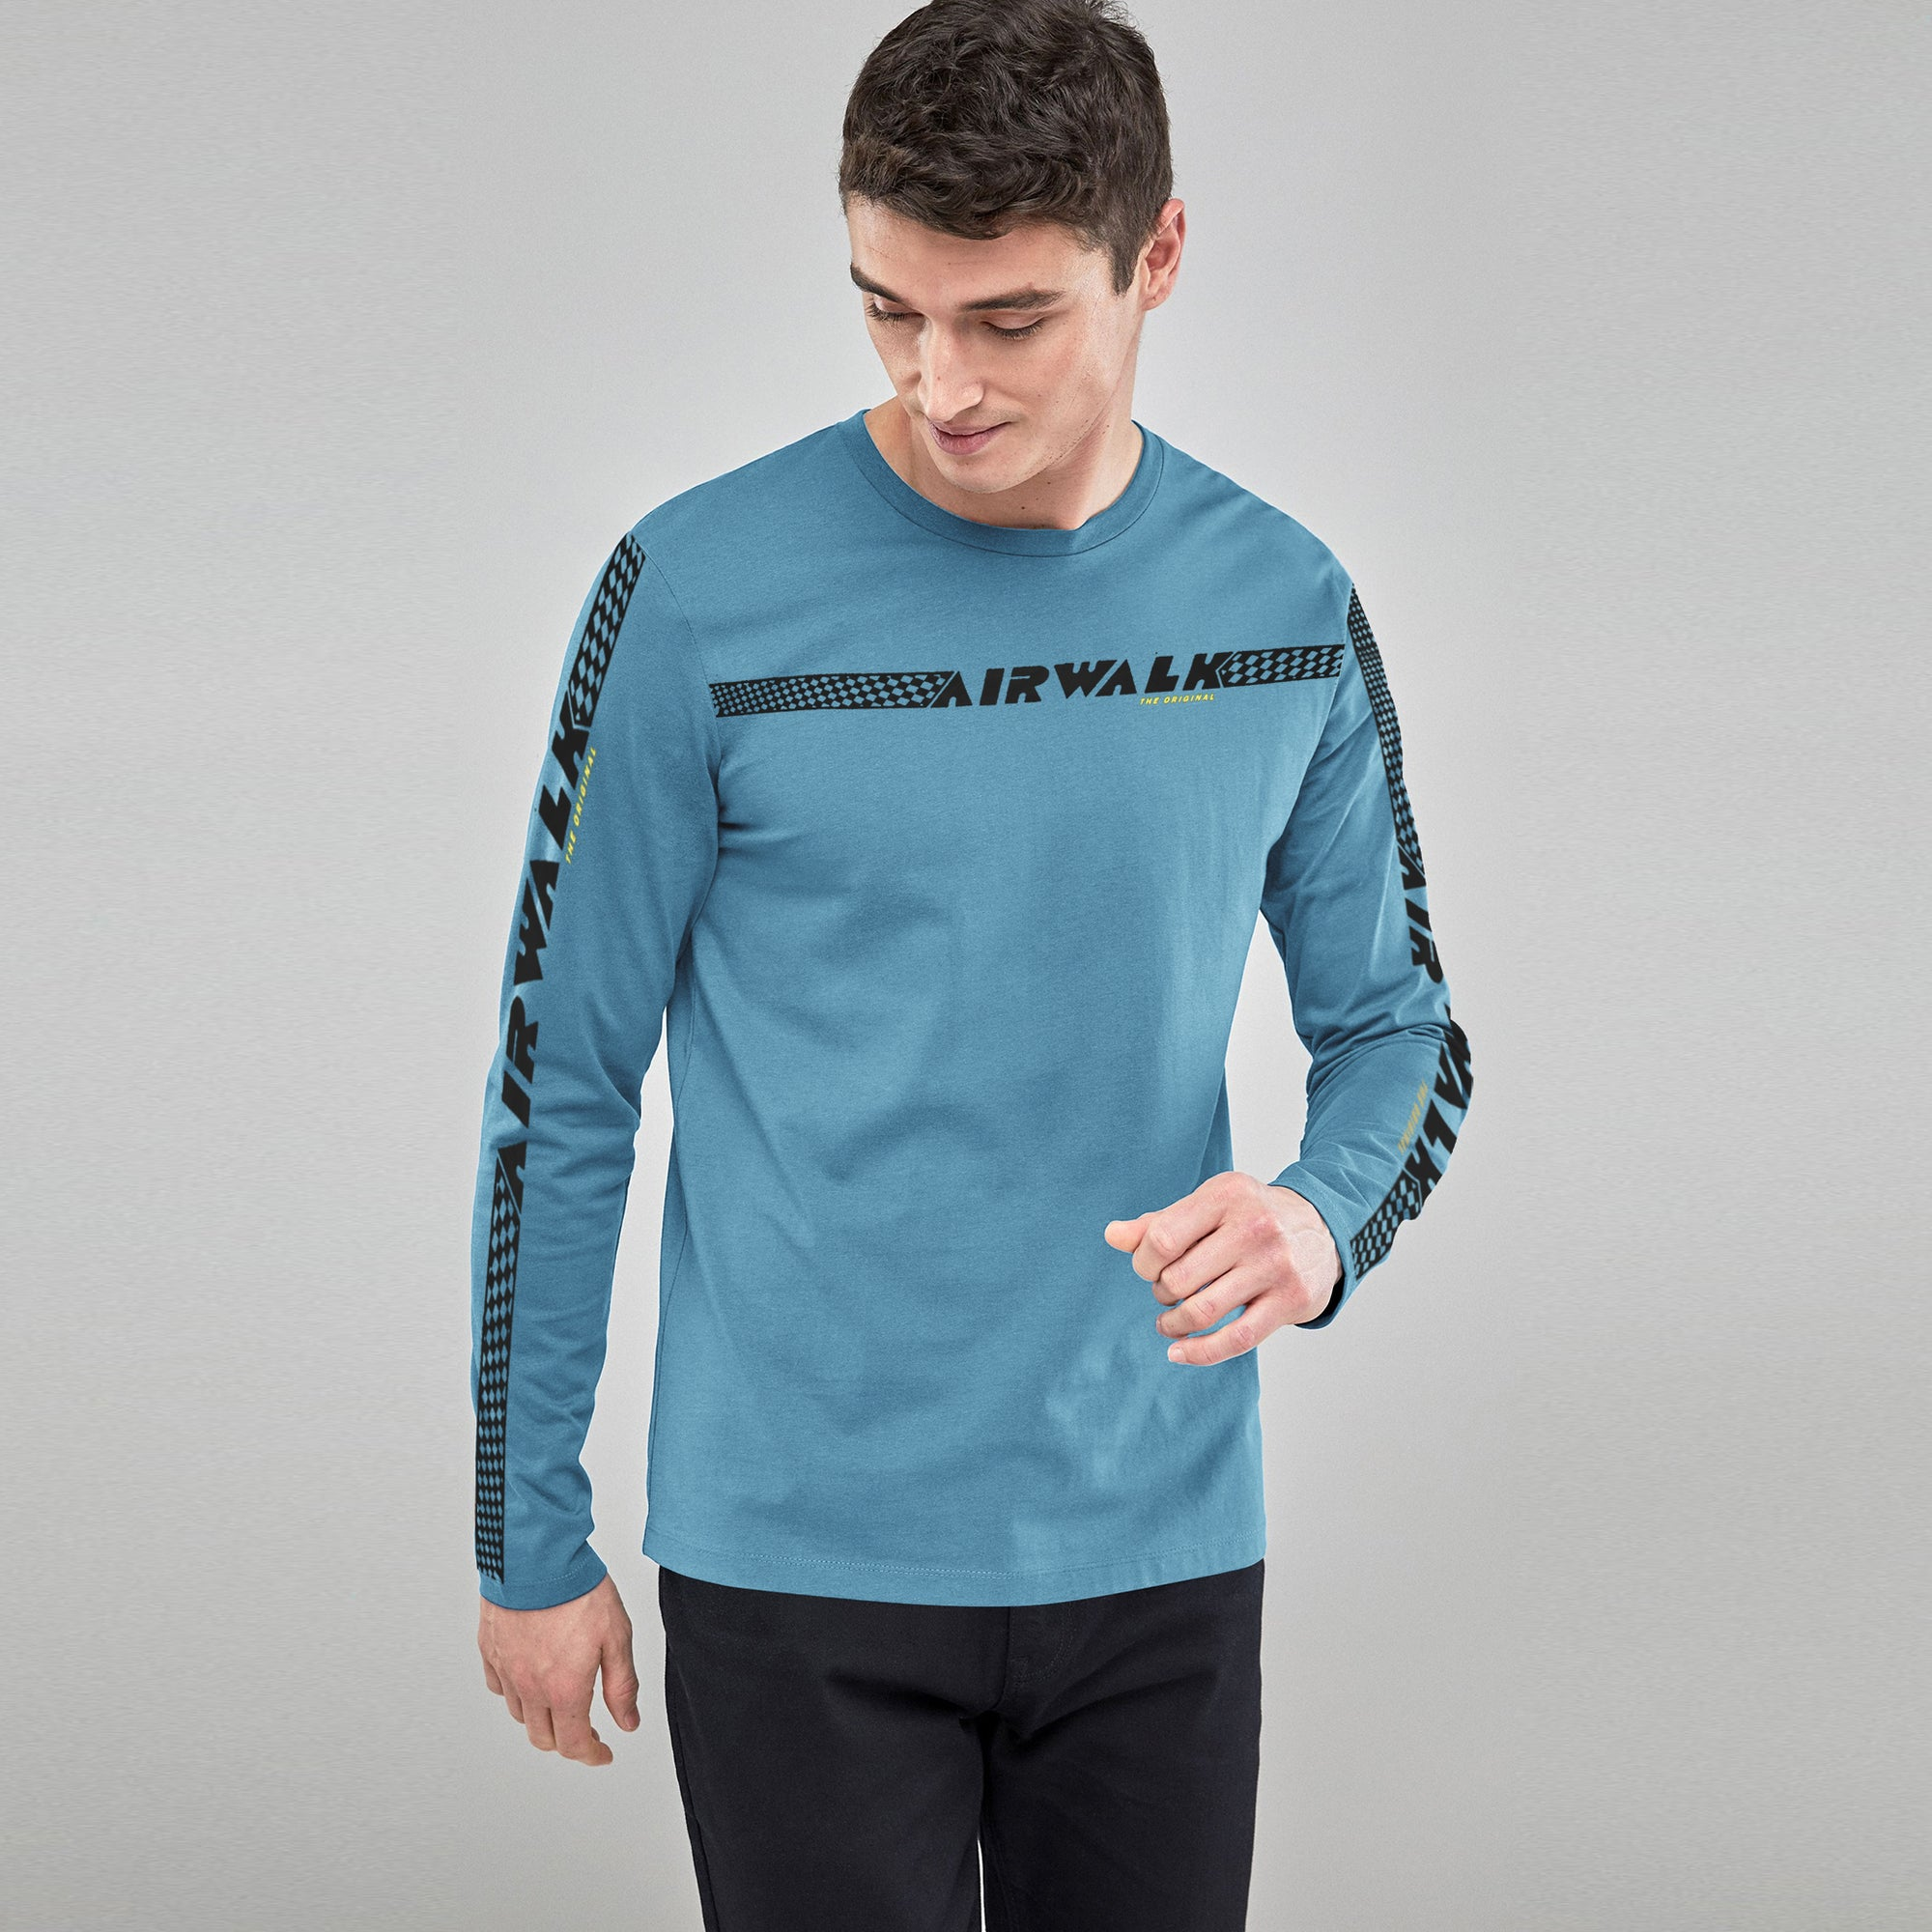 Air Walk Single Jersey Long Sleeve Tee Shirt For Men-Dark Sky-BE8892